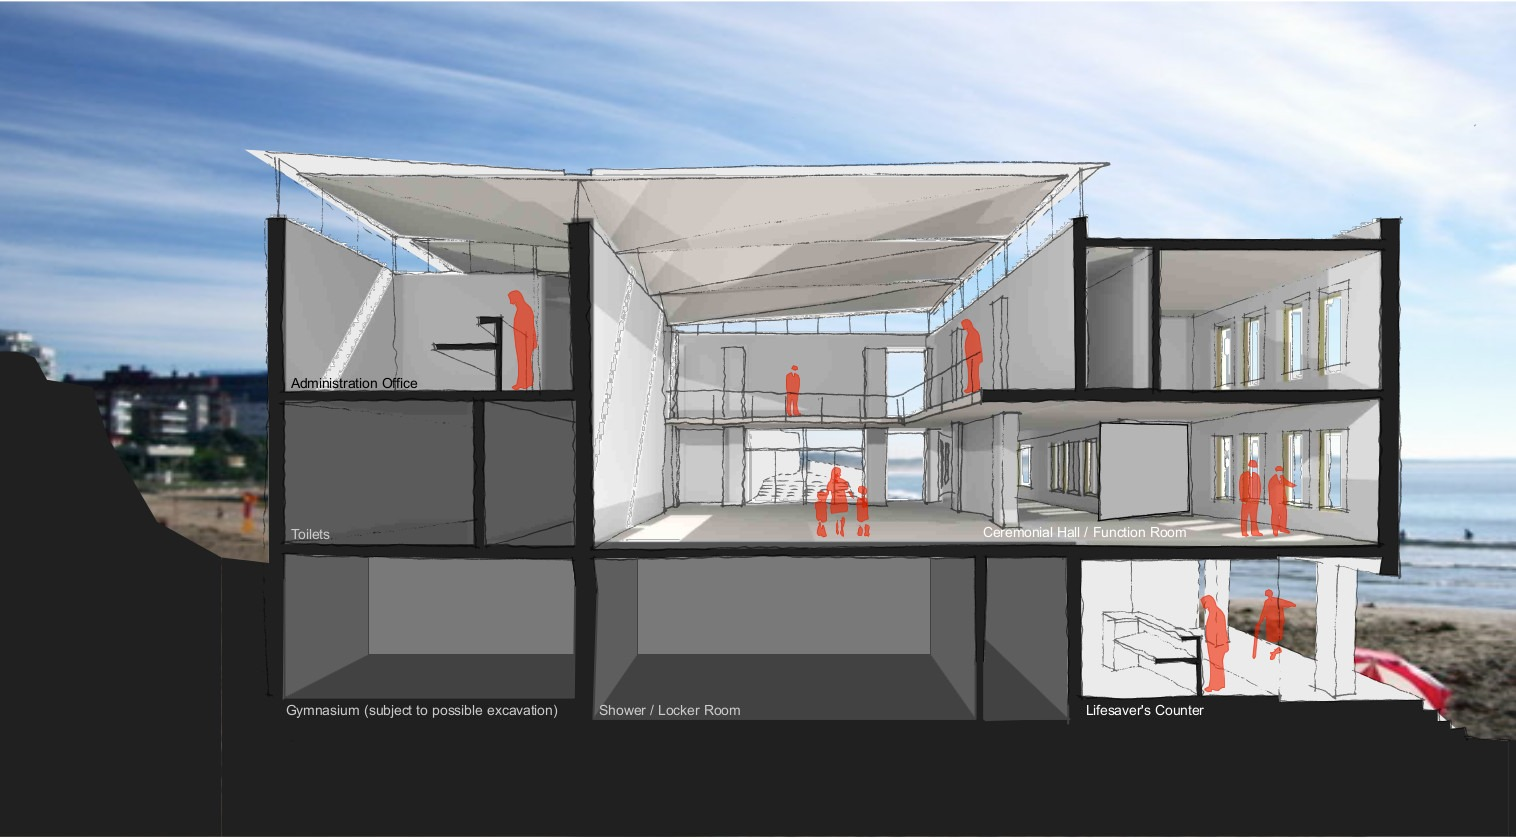 Internal Perspective of the Proposed Concept Design